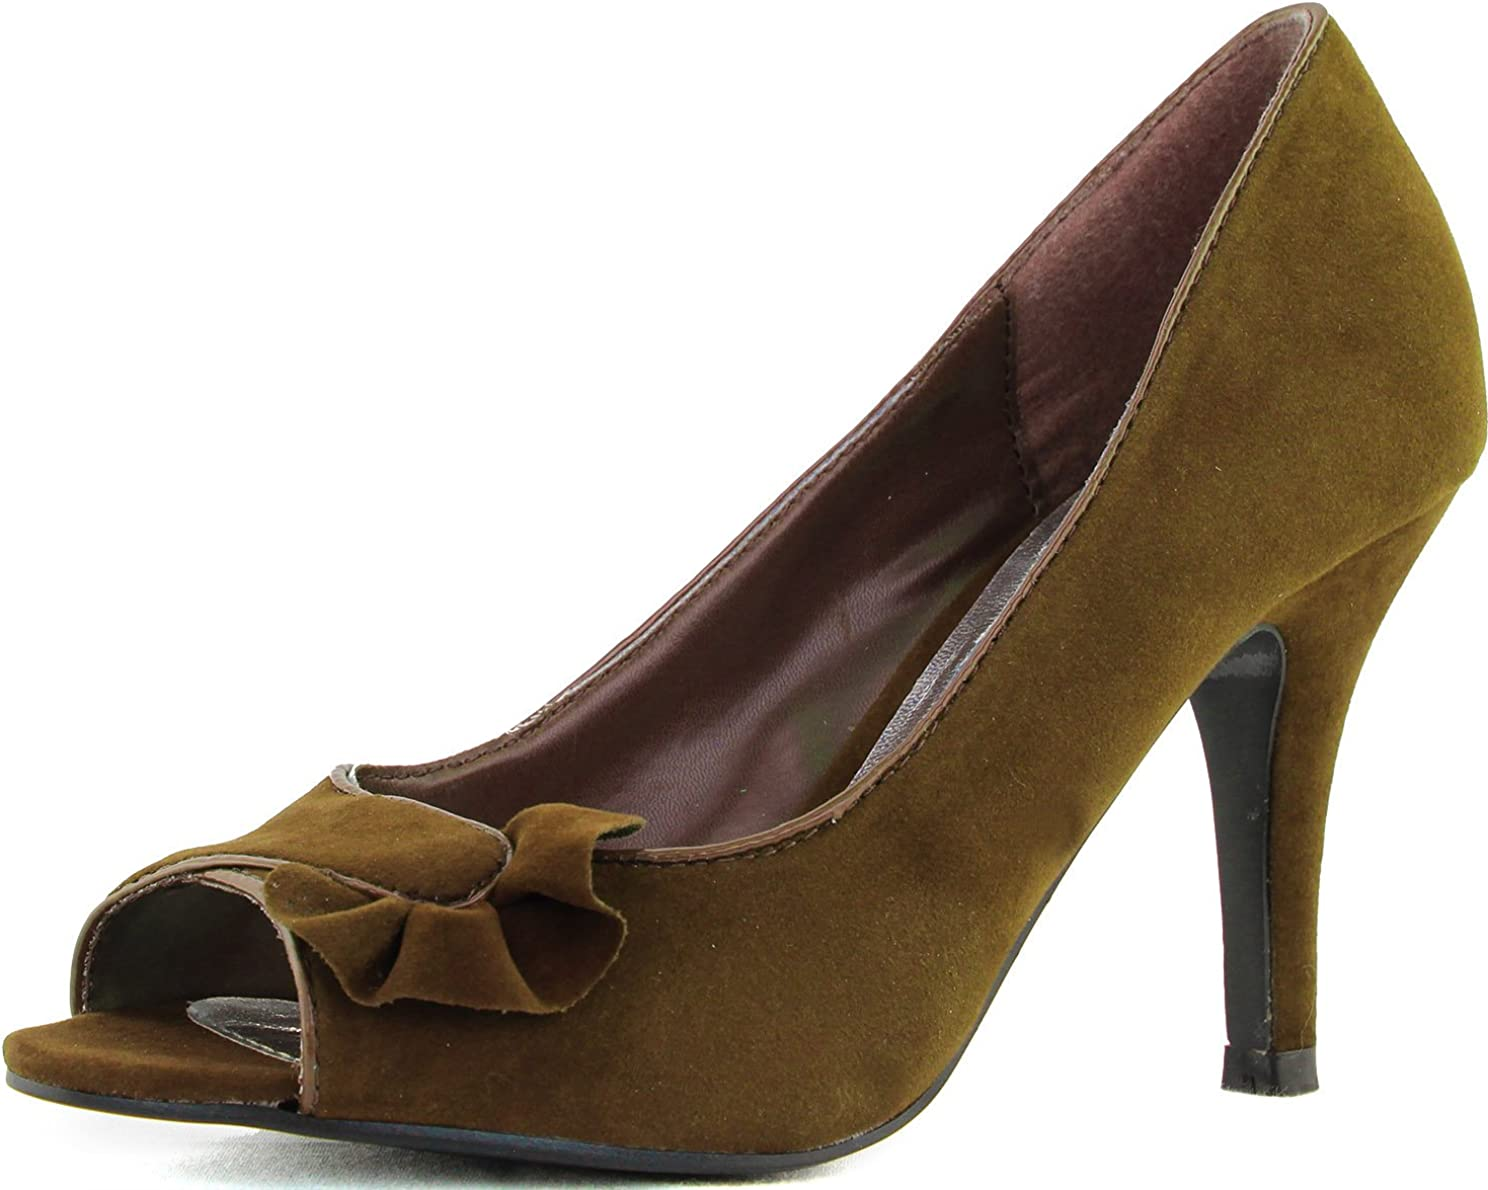 Qupid Women's High Heel Peep Toe Pumps Office Lady Work Interview Sexy Sandal Fashion Shoes